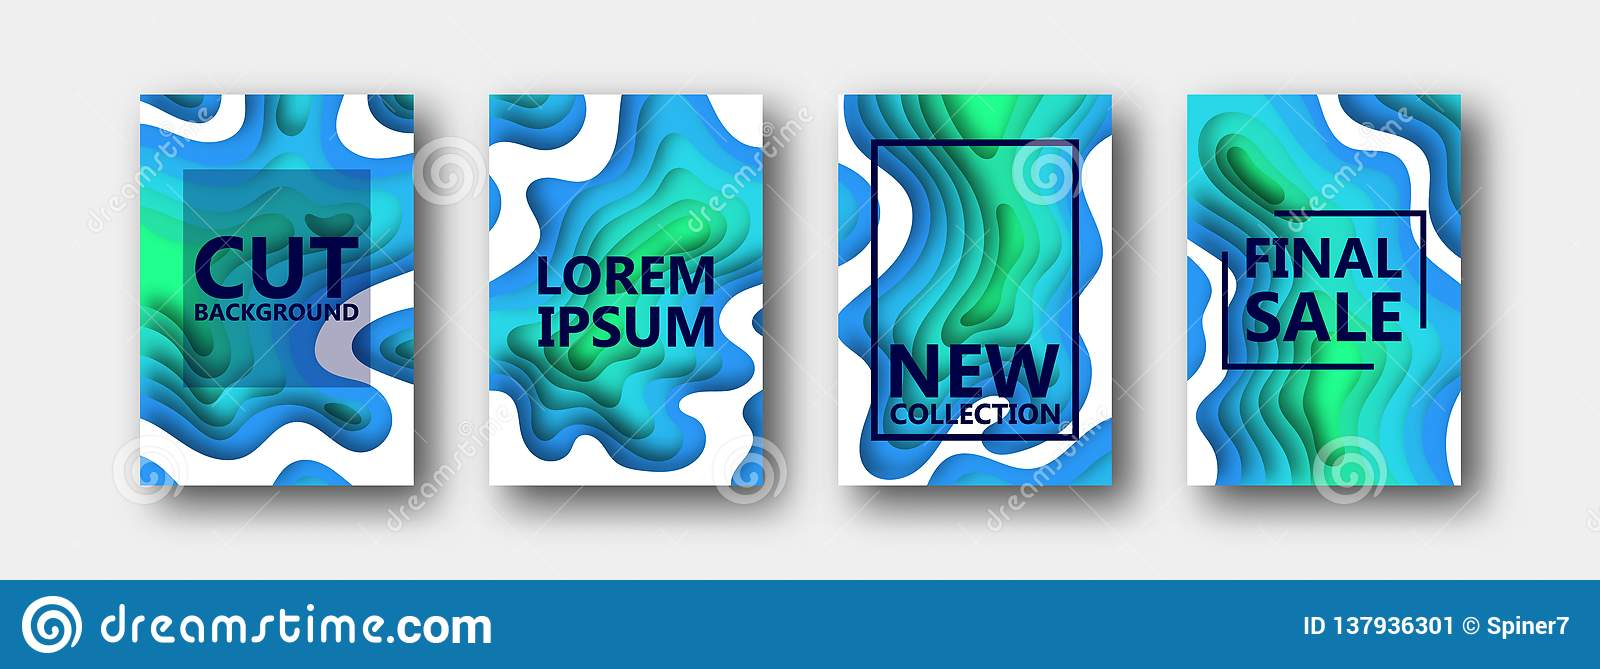 A set of four options for banners, flyers, brochures, cards, posters for your design, in blue-green tones.